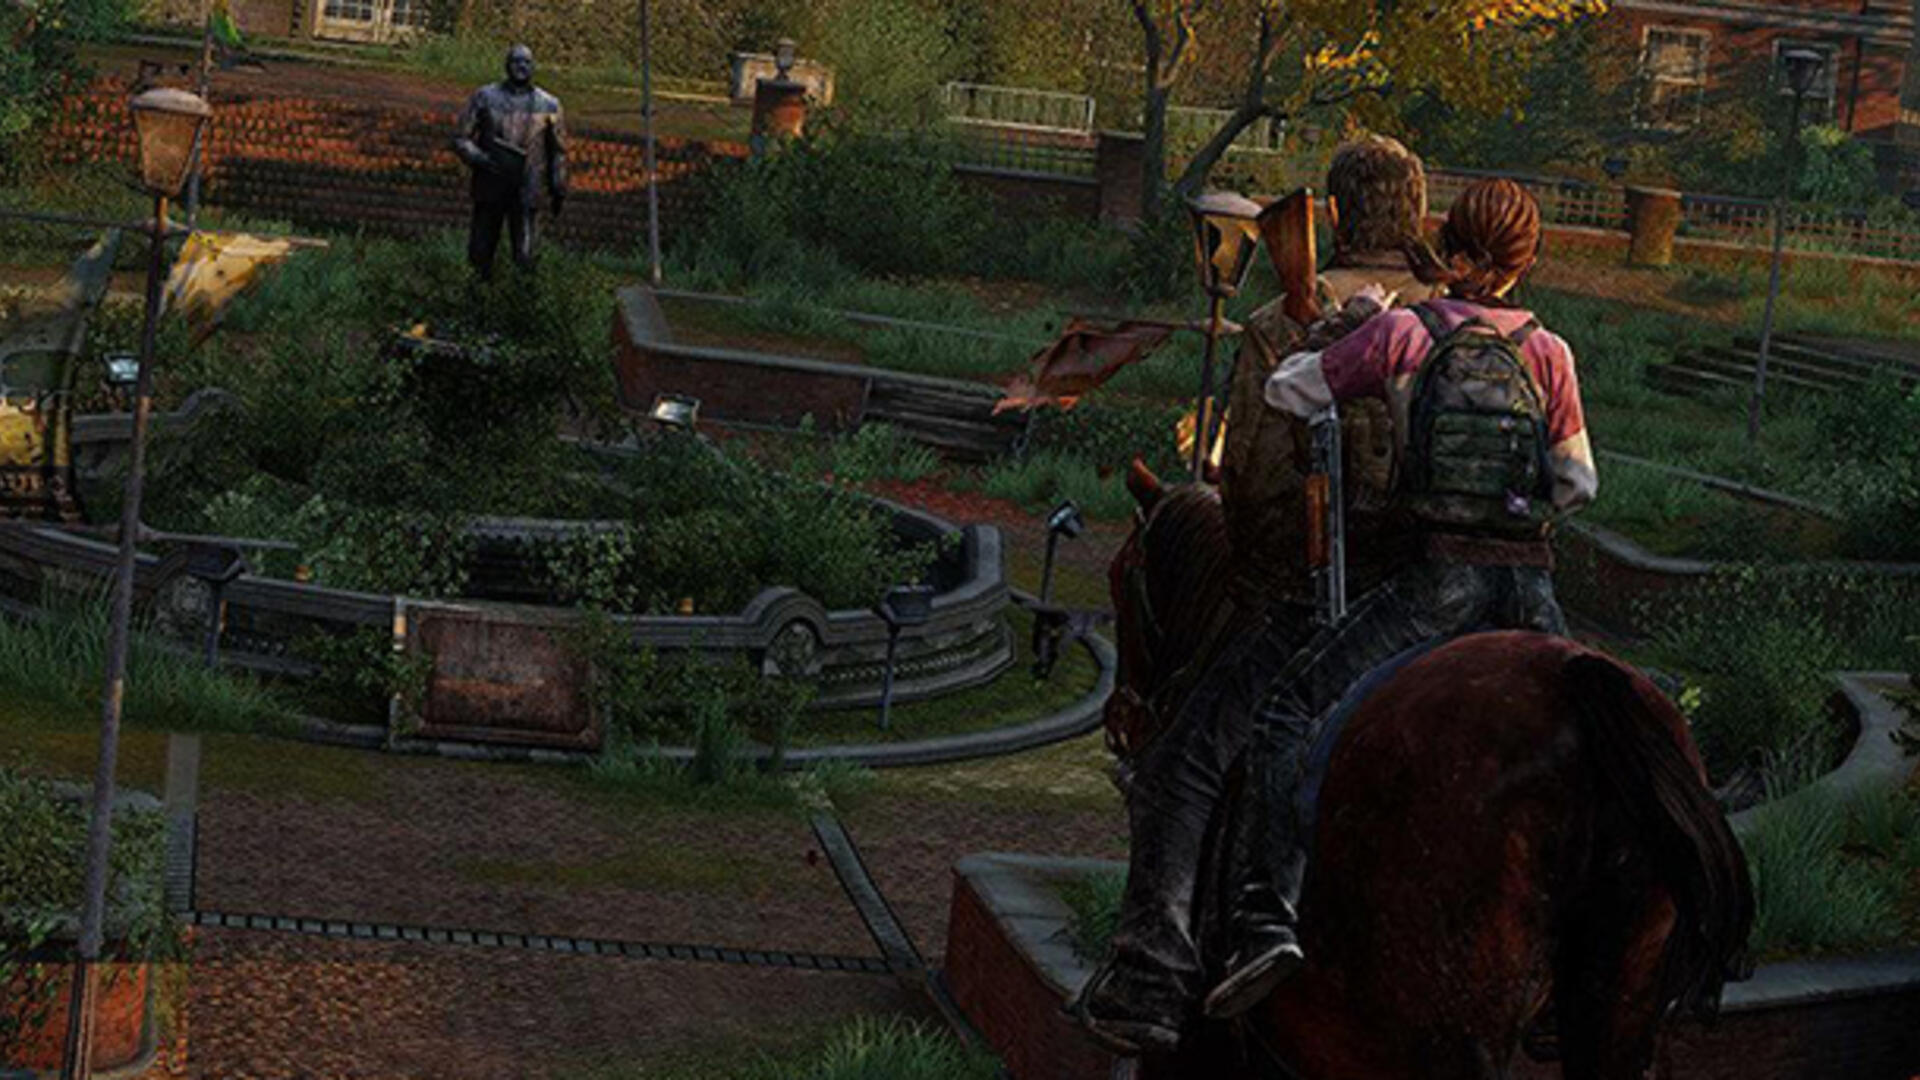 Naughty Dog Considered First-Person Perspective for The Last of Us